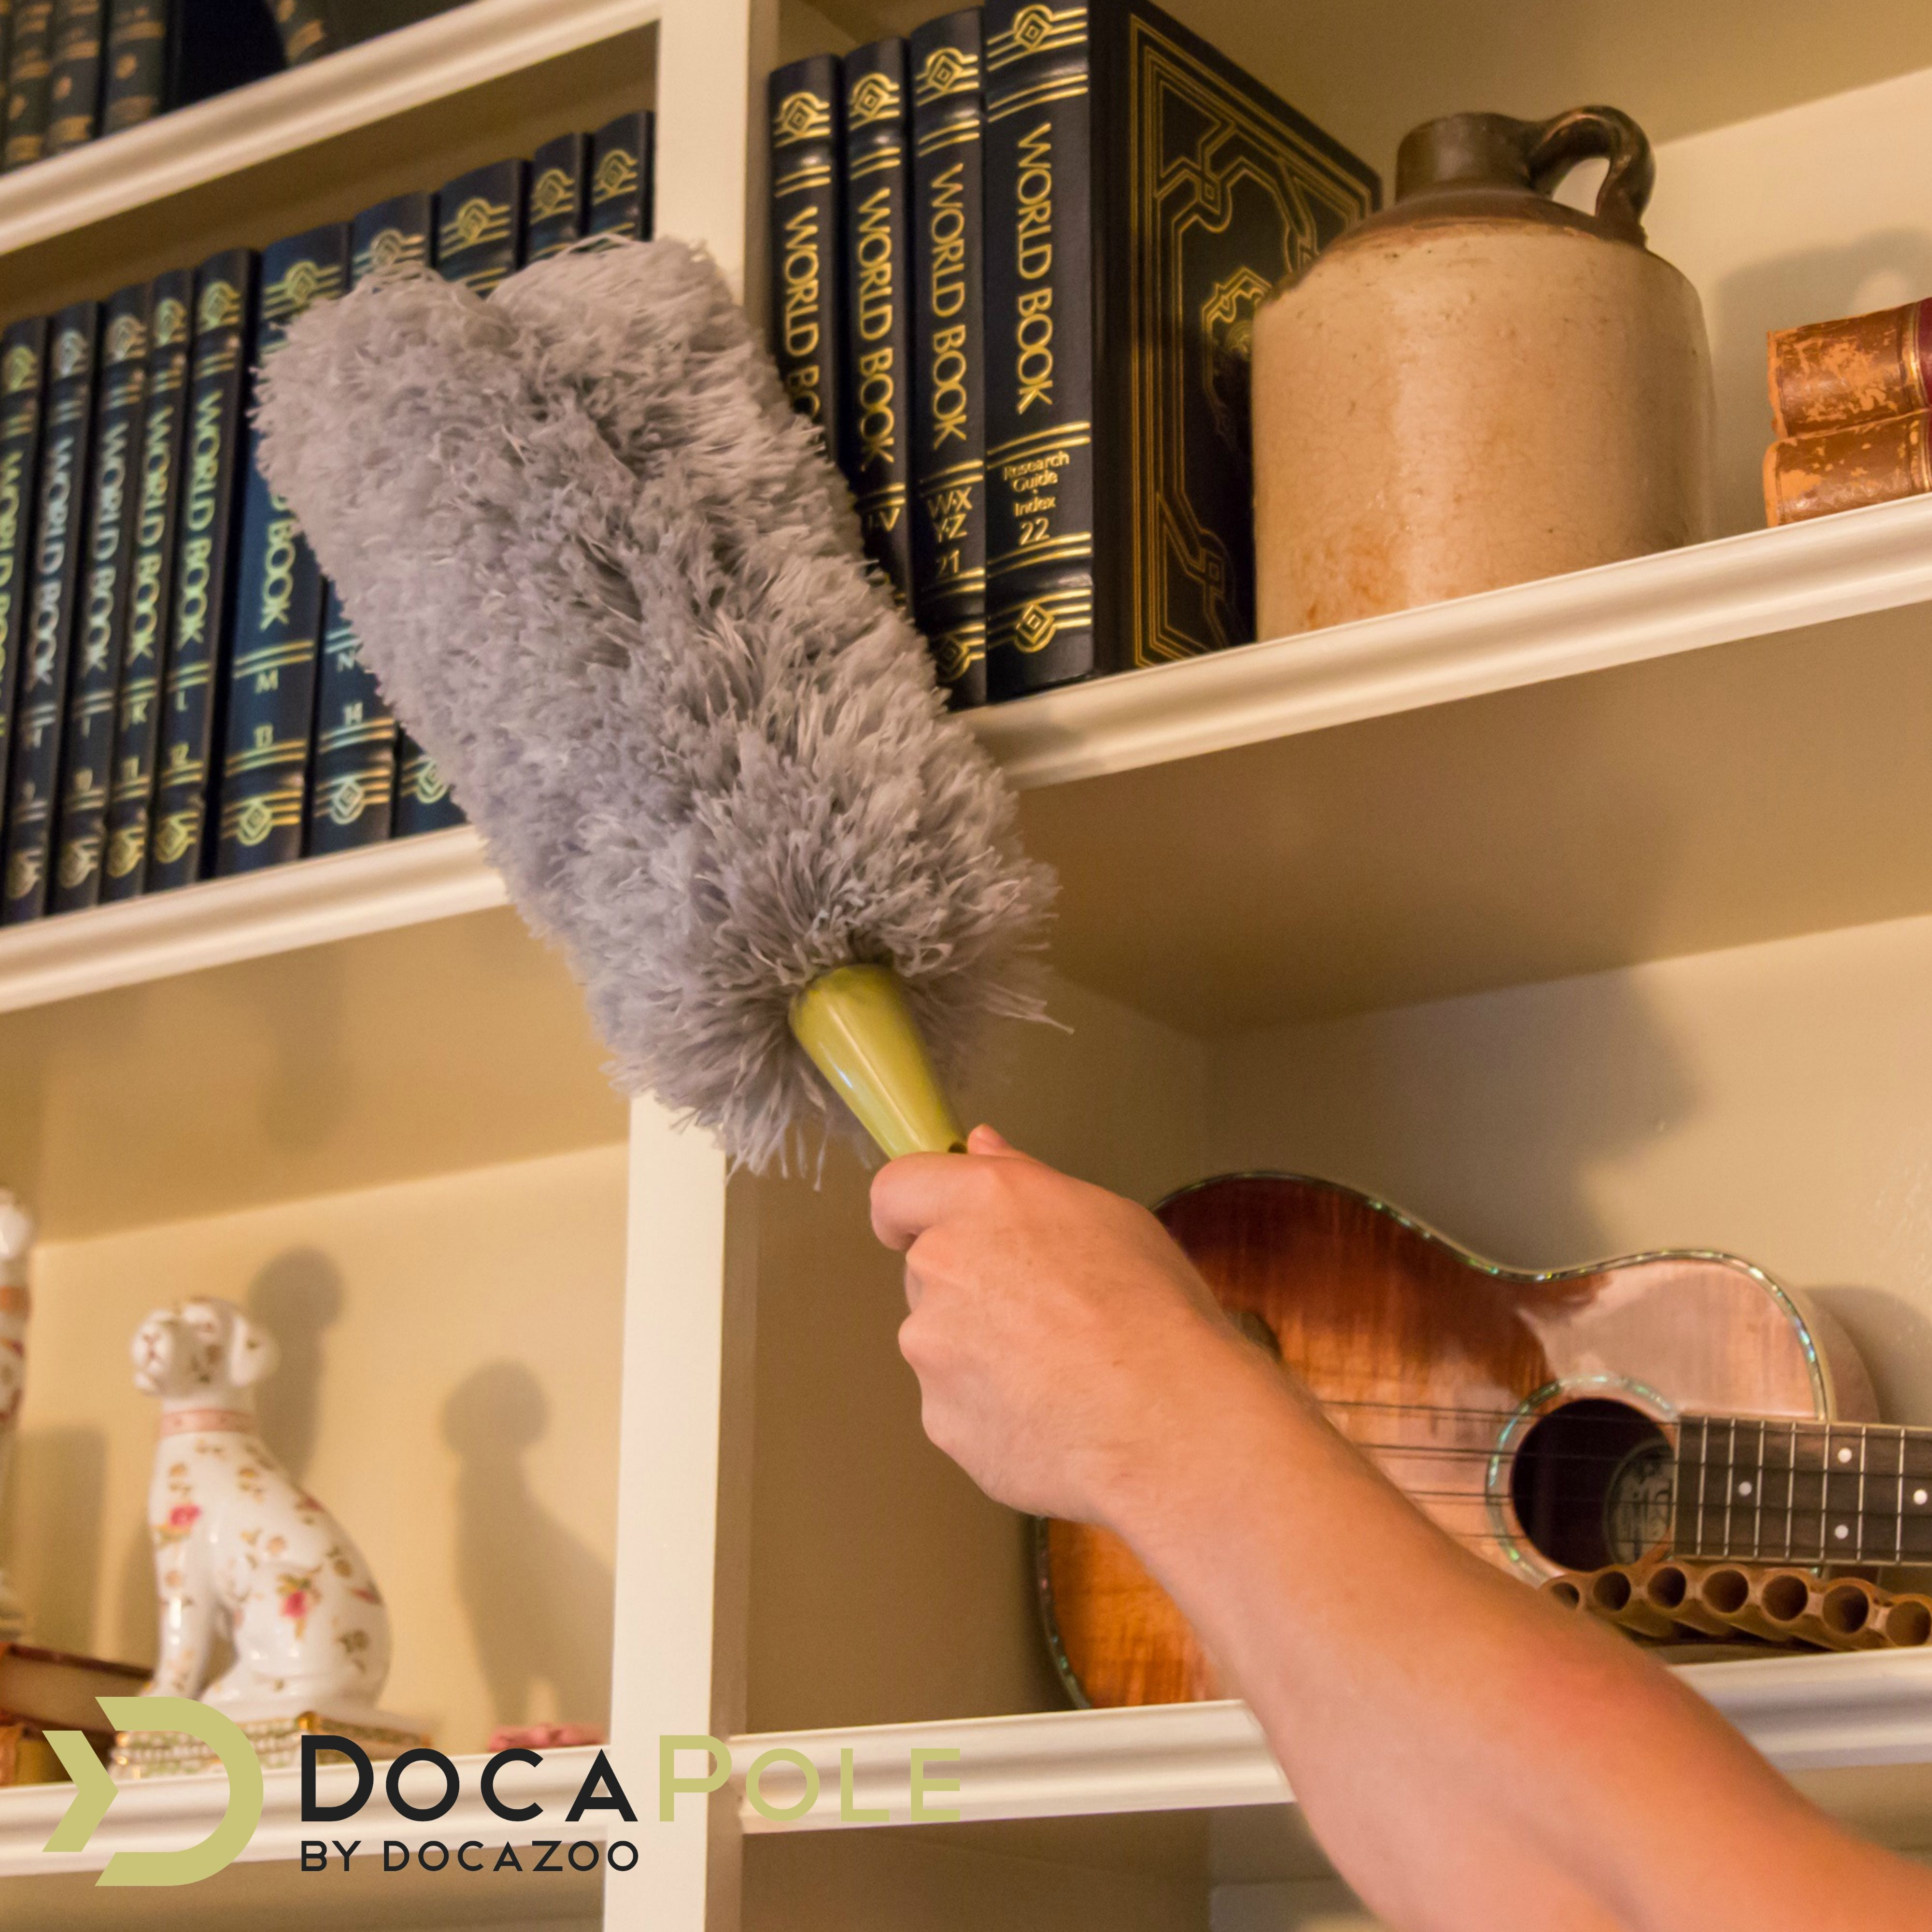 Docapole Microfiber Dusting And Cleaning Attachment Microfiber Cleaner Cleaning Surface Microfiber